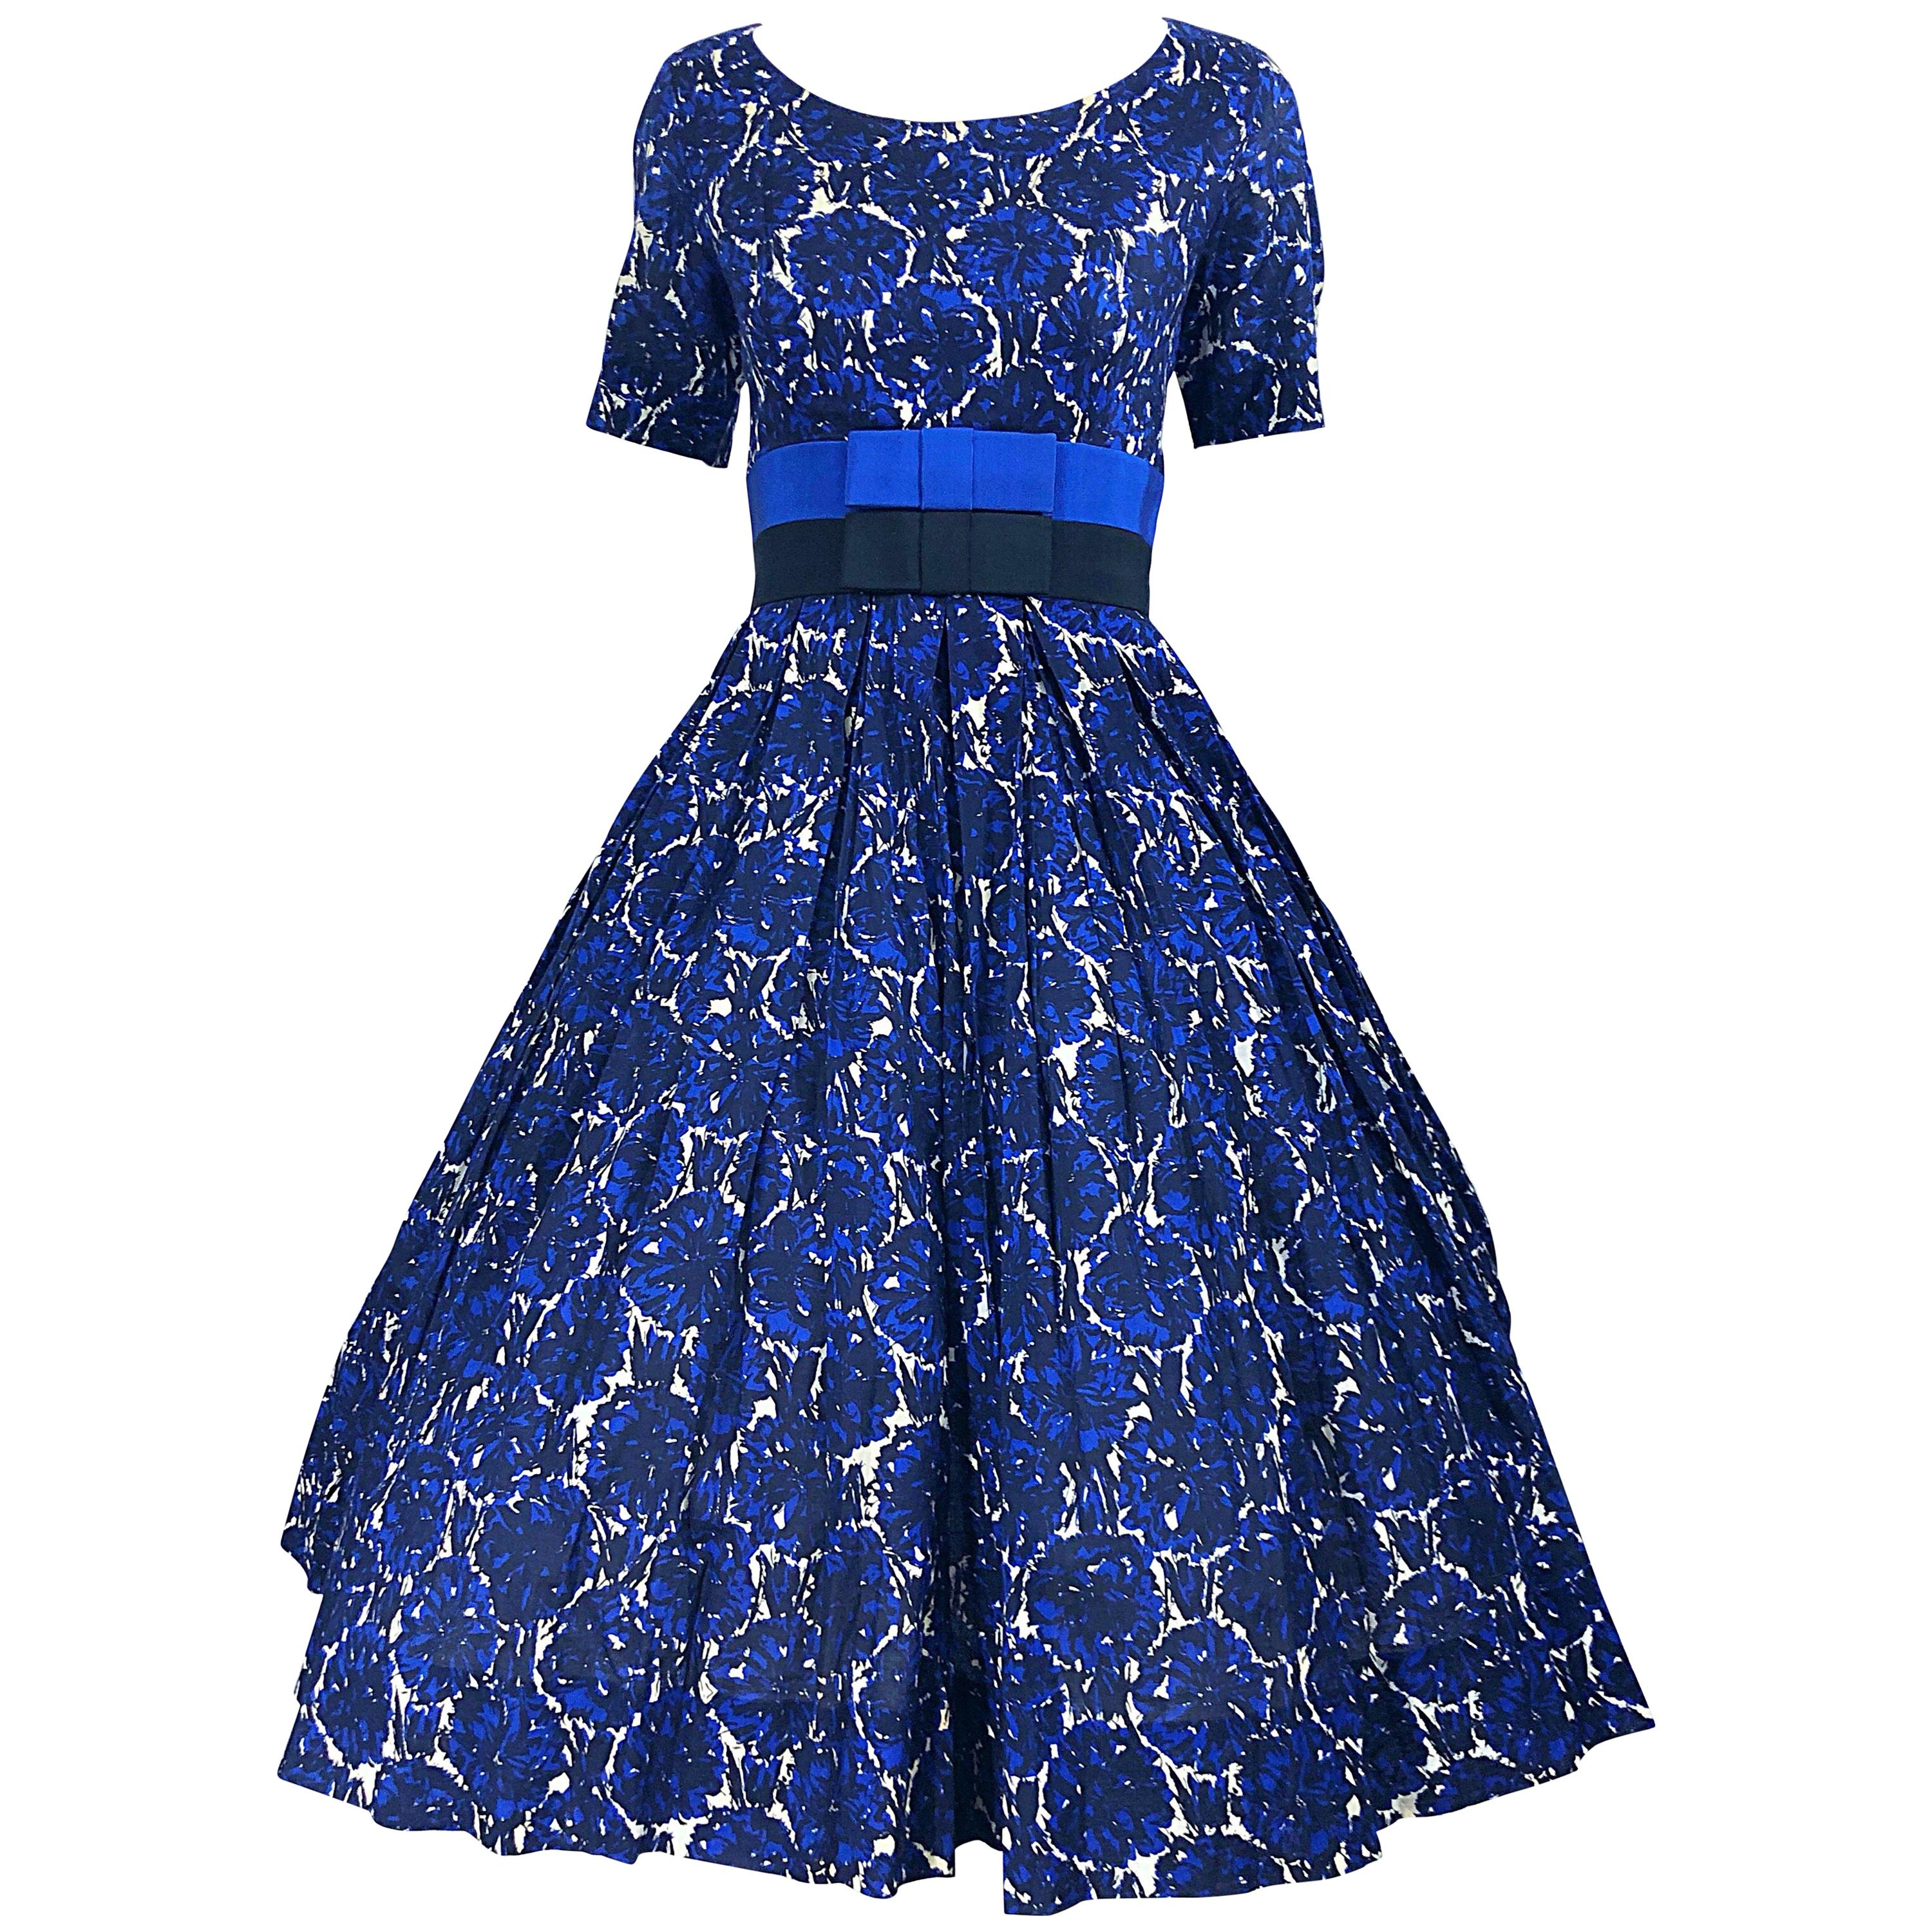 1950s Bonwit Teller Demi Couture Blue Abstract Floral Fit n' Flare Vintage Dress